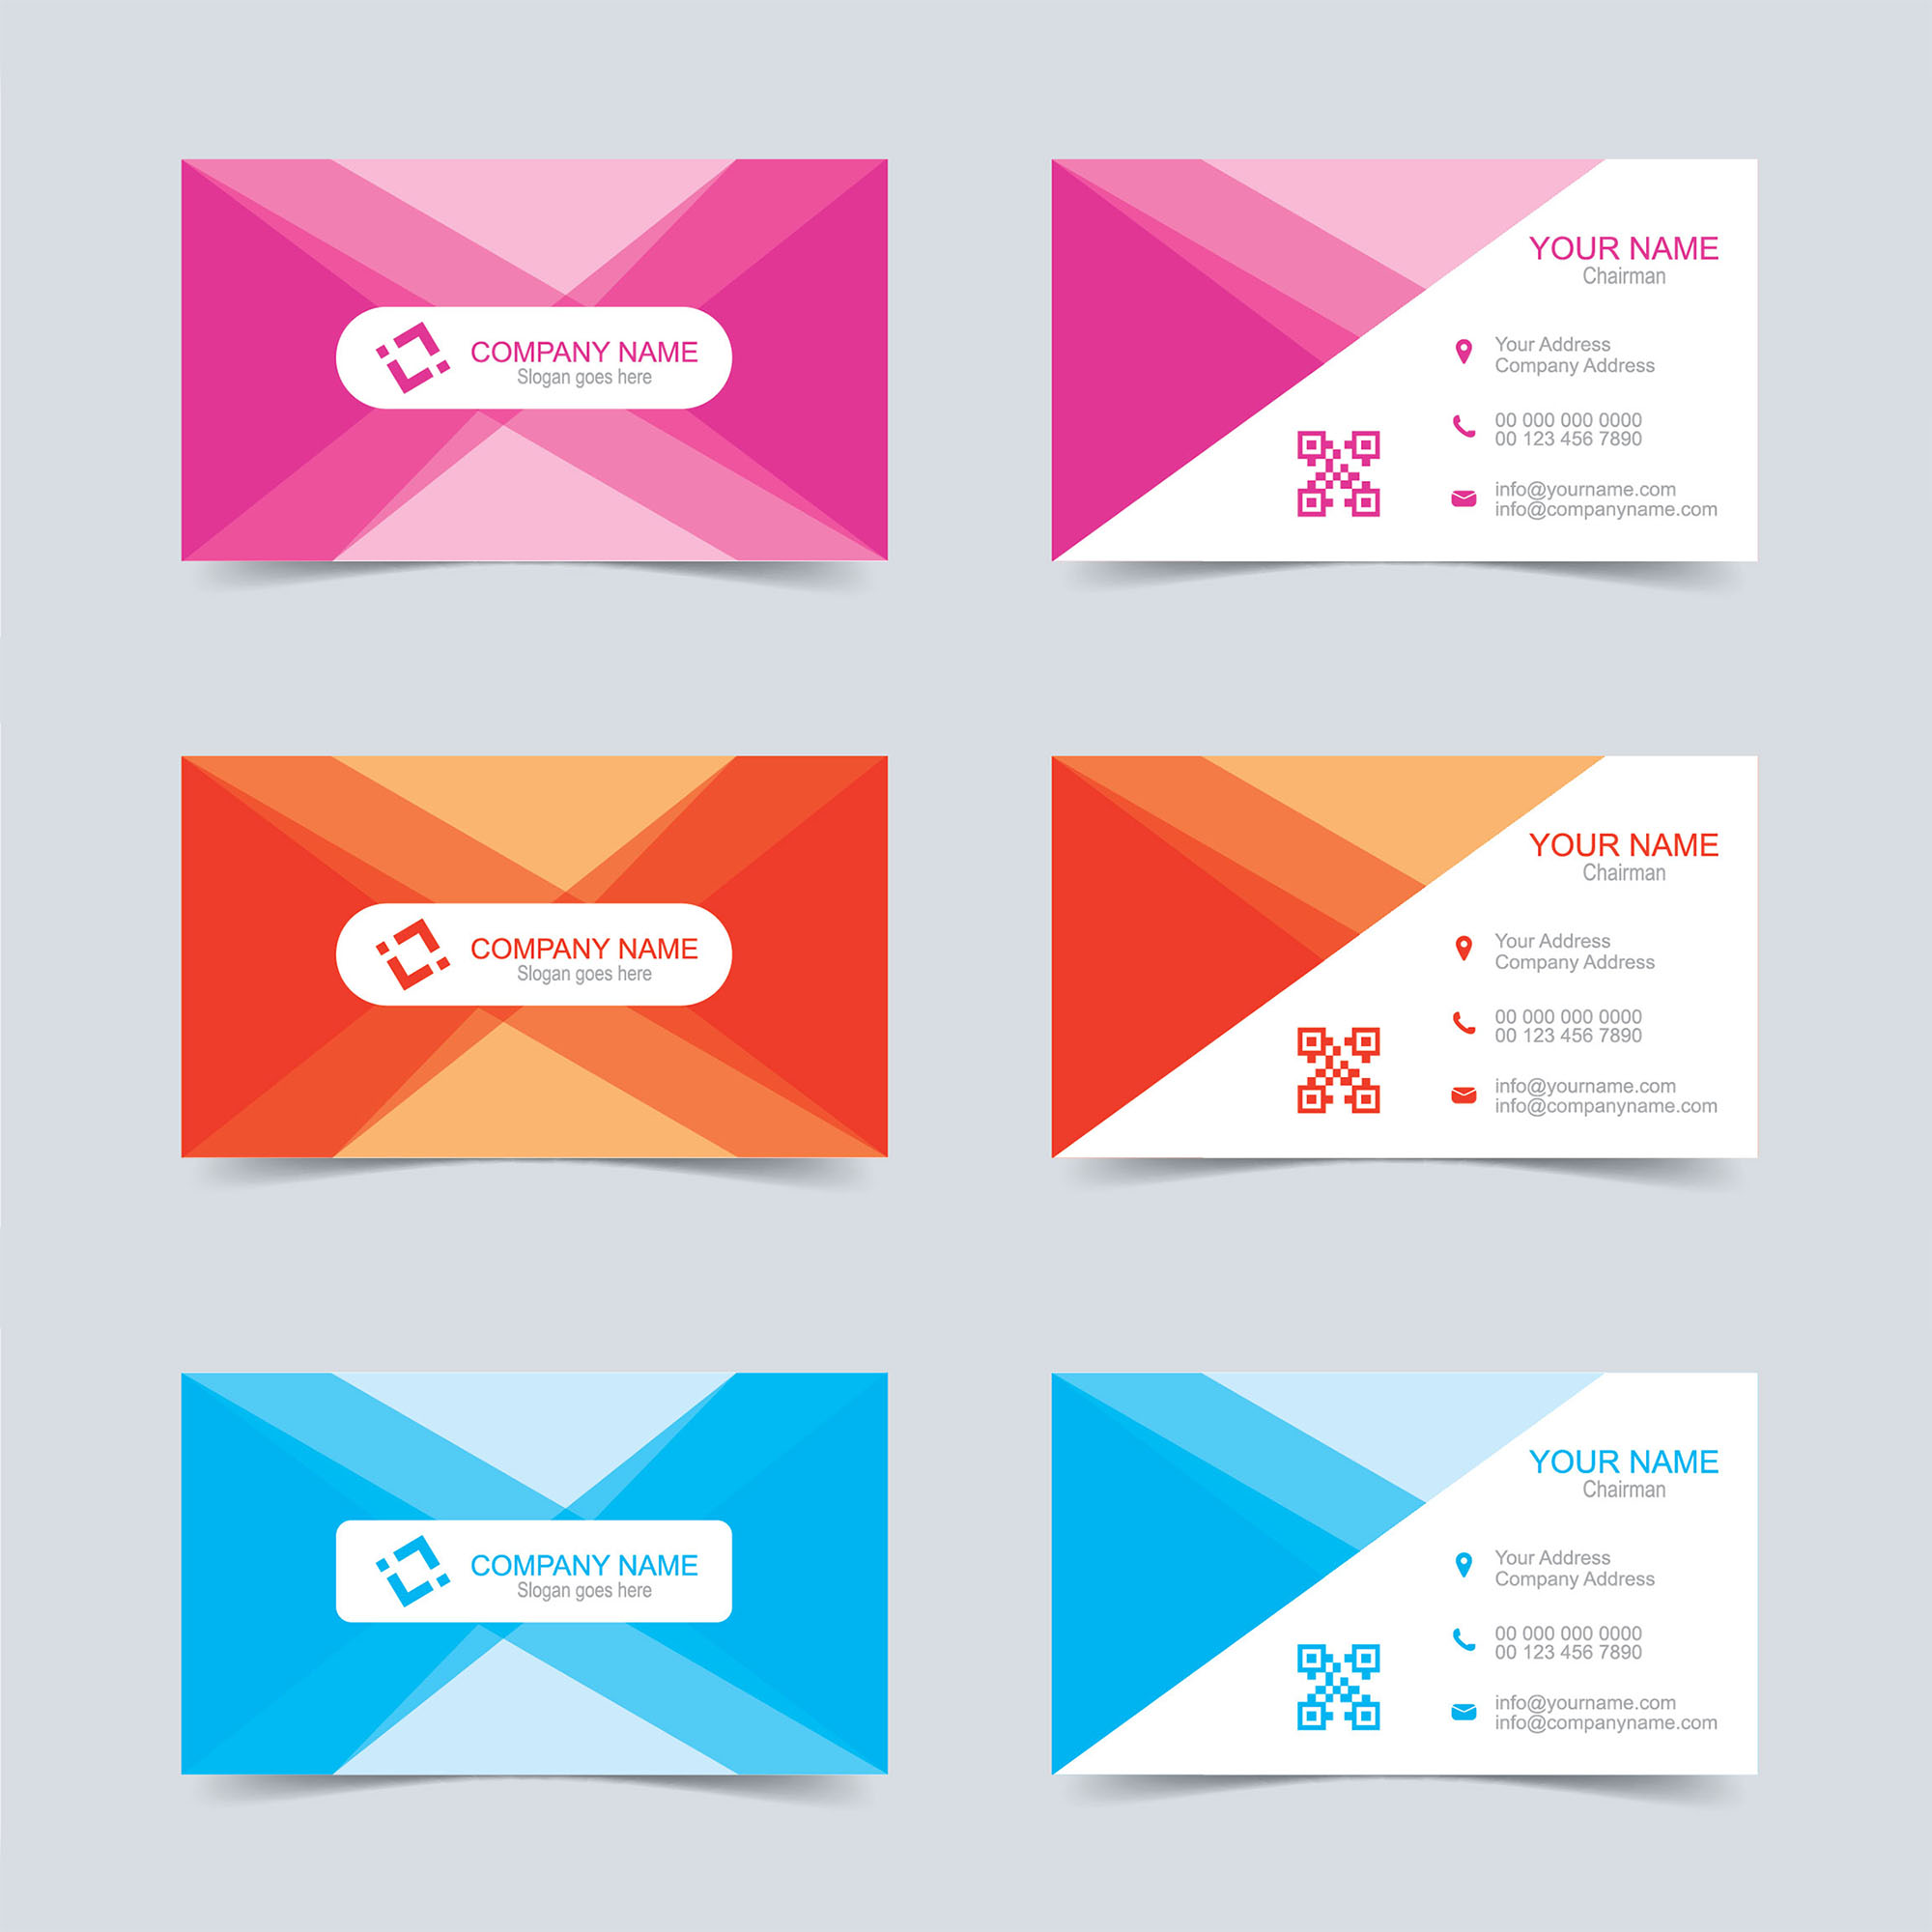 Vector business card template free download wisxi business card business cards business card design business card template design templates flashek Gallery